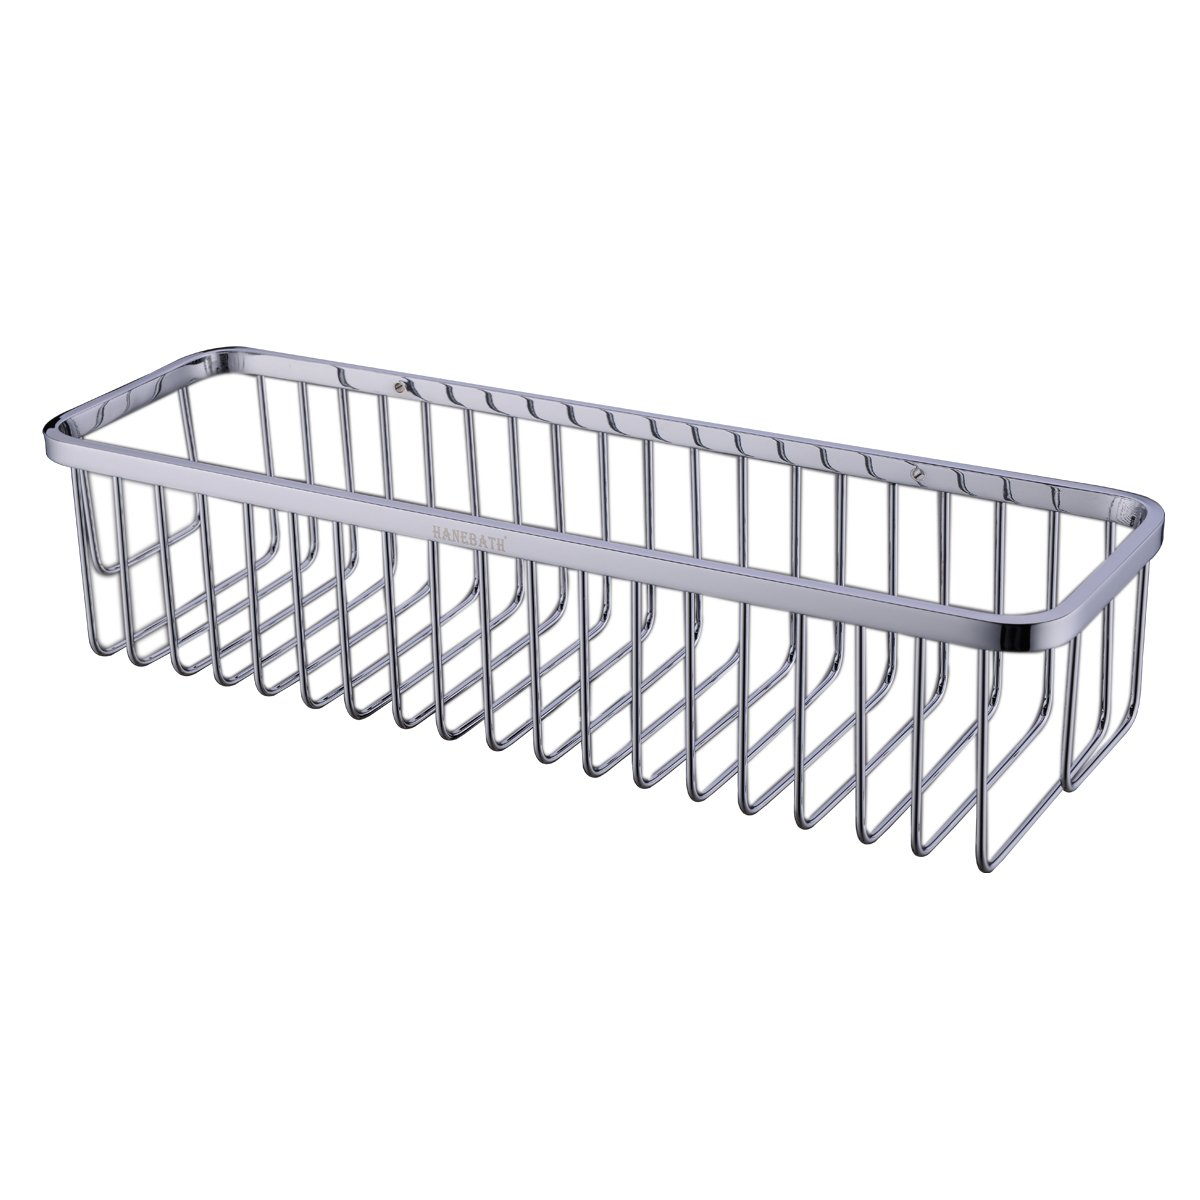 Rectangular Shower Caddy - Stainless Steel Wall Mount Shower Basket for Bathroom , Polished Chrome